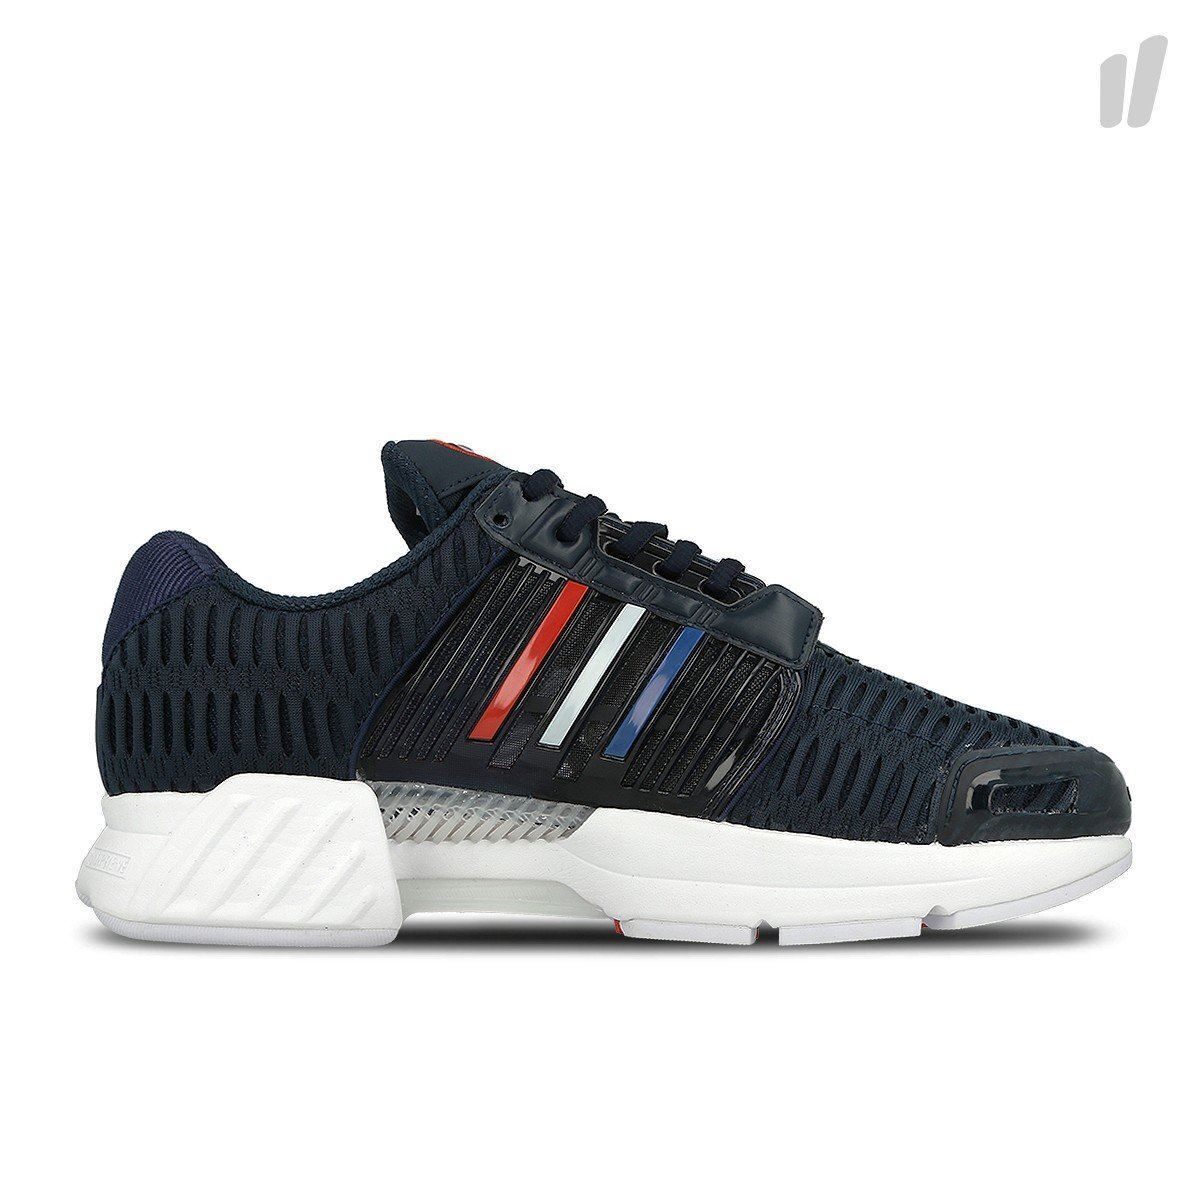 adidas ORIGINALS CLIMA CLIMA CLIMA COOL TRAINERS RETRO MEN'S NAVY RUNNING SHOES SNEAKERS 1d22bf